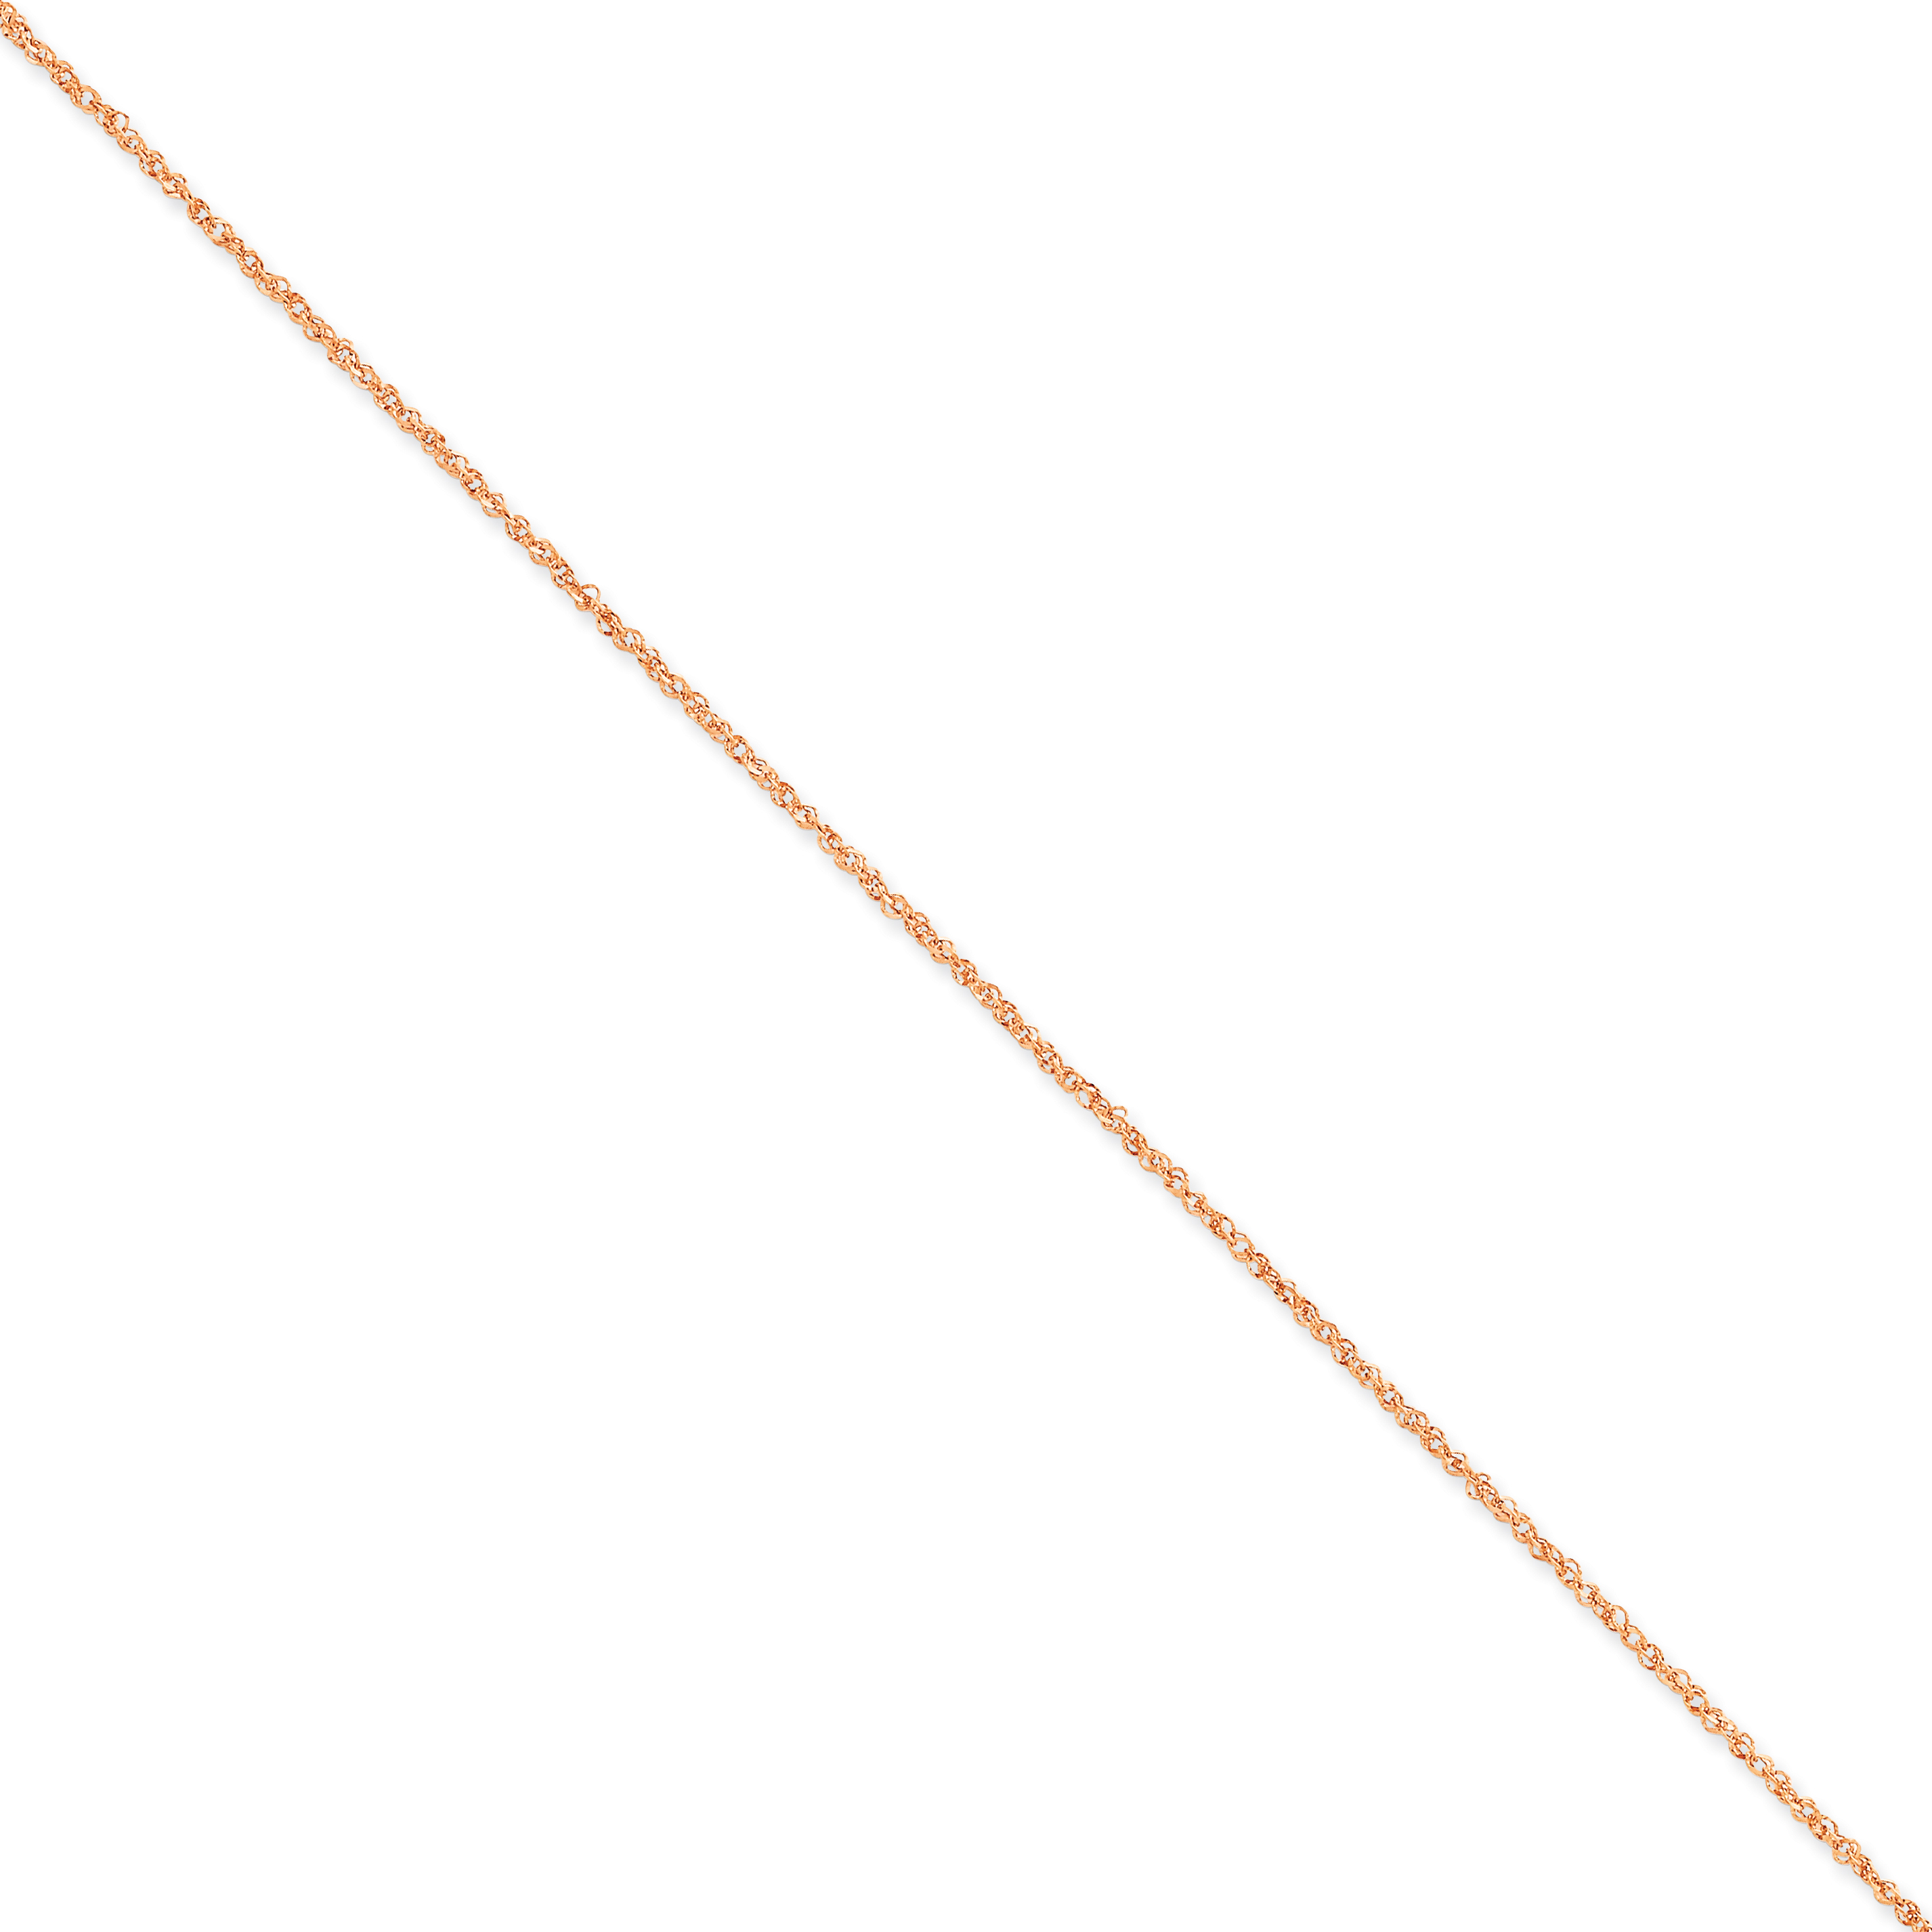 14k Rose Gold 1.7mm Ropa Chain Anklet Ankle Beach Bracelet Fine Jewelry Gifts For Women For Her - image 4 of 4